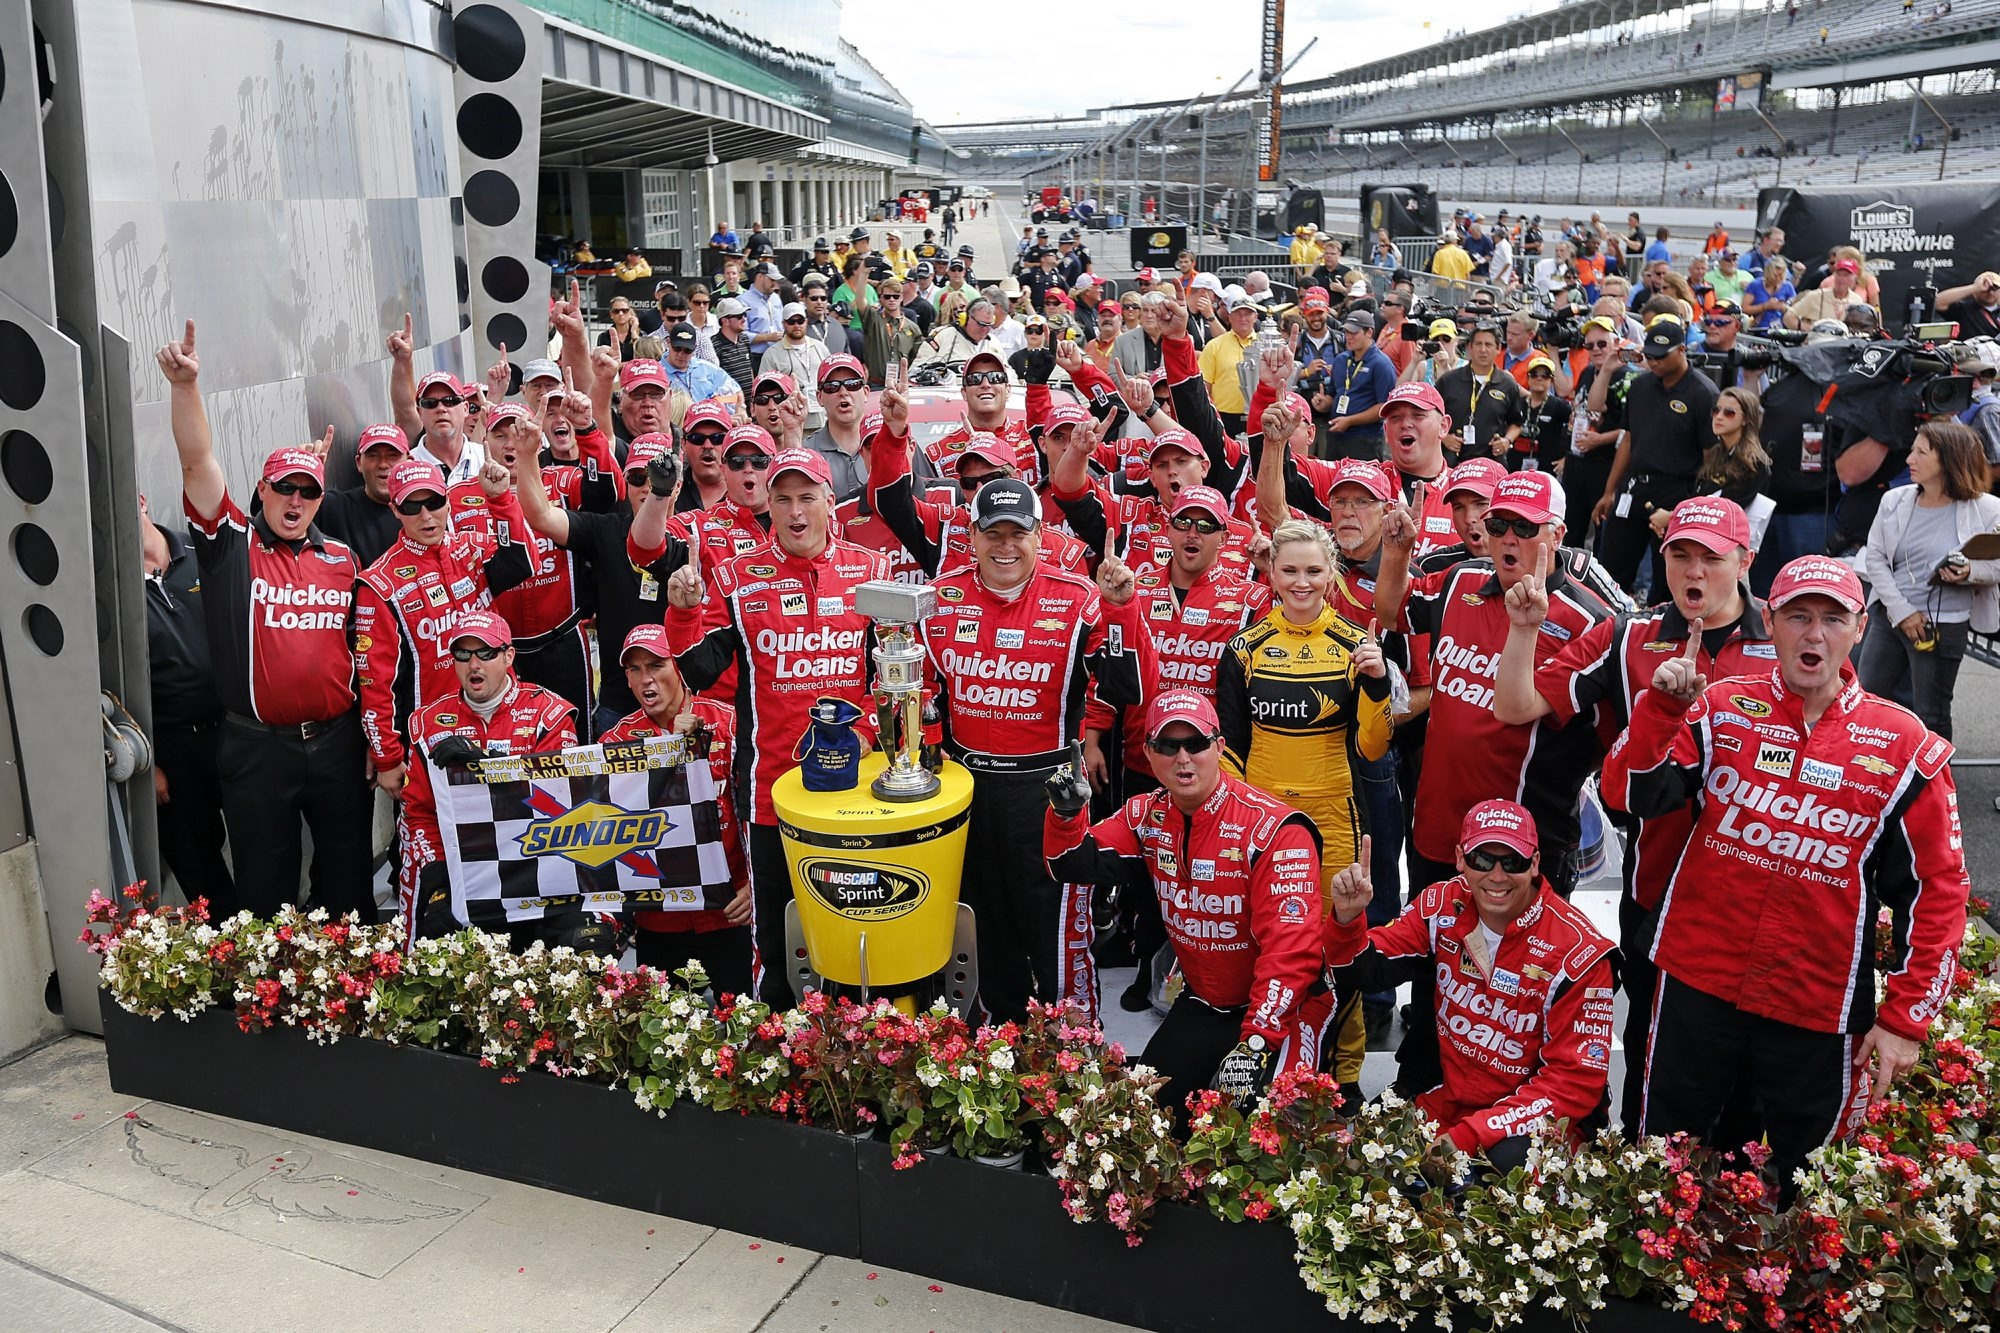 Blasdell native Jeff Kuhn, kneeling at far right in the front row, celebrates his team's victory at Indianapolis Motor Speedway after Ryan Newman won this year's Brickyard 400.